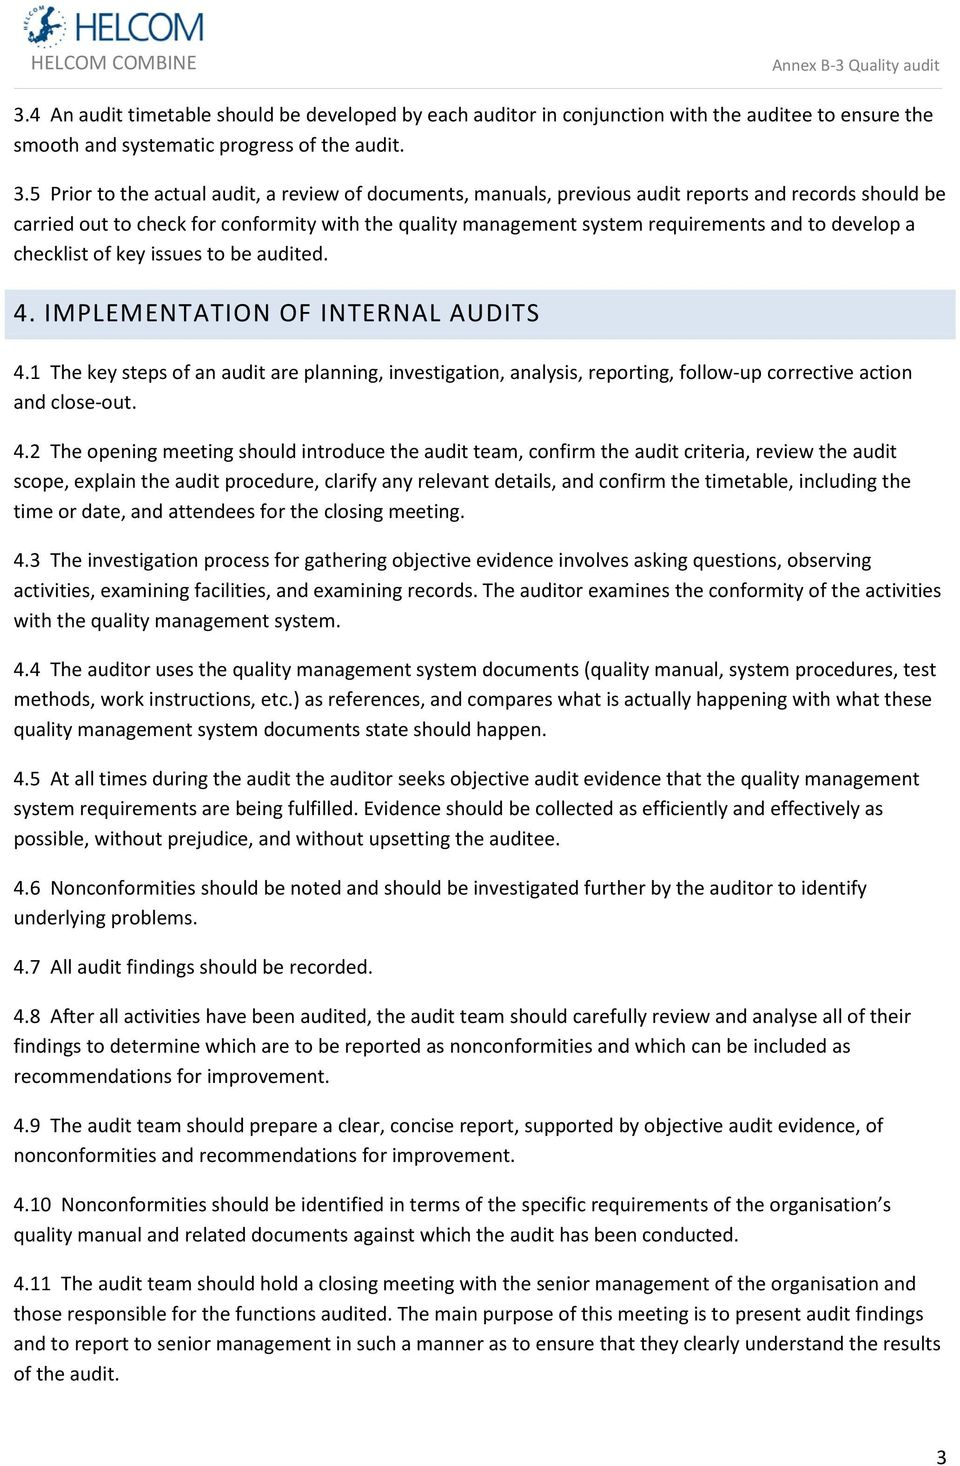 develop a checklist of key issues to be audited. 4. IMPLEMENTATION OF INTERNAL AUDITS 4.